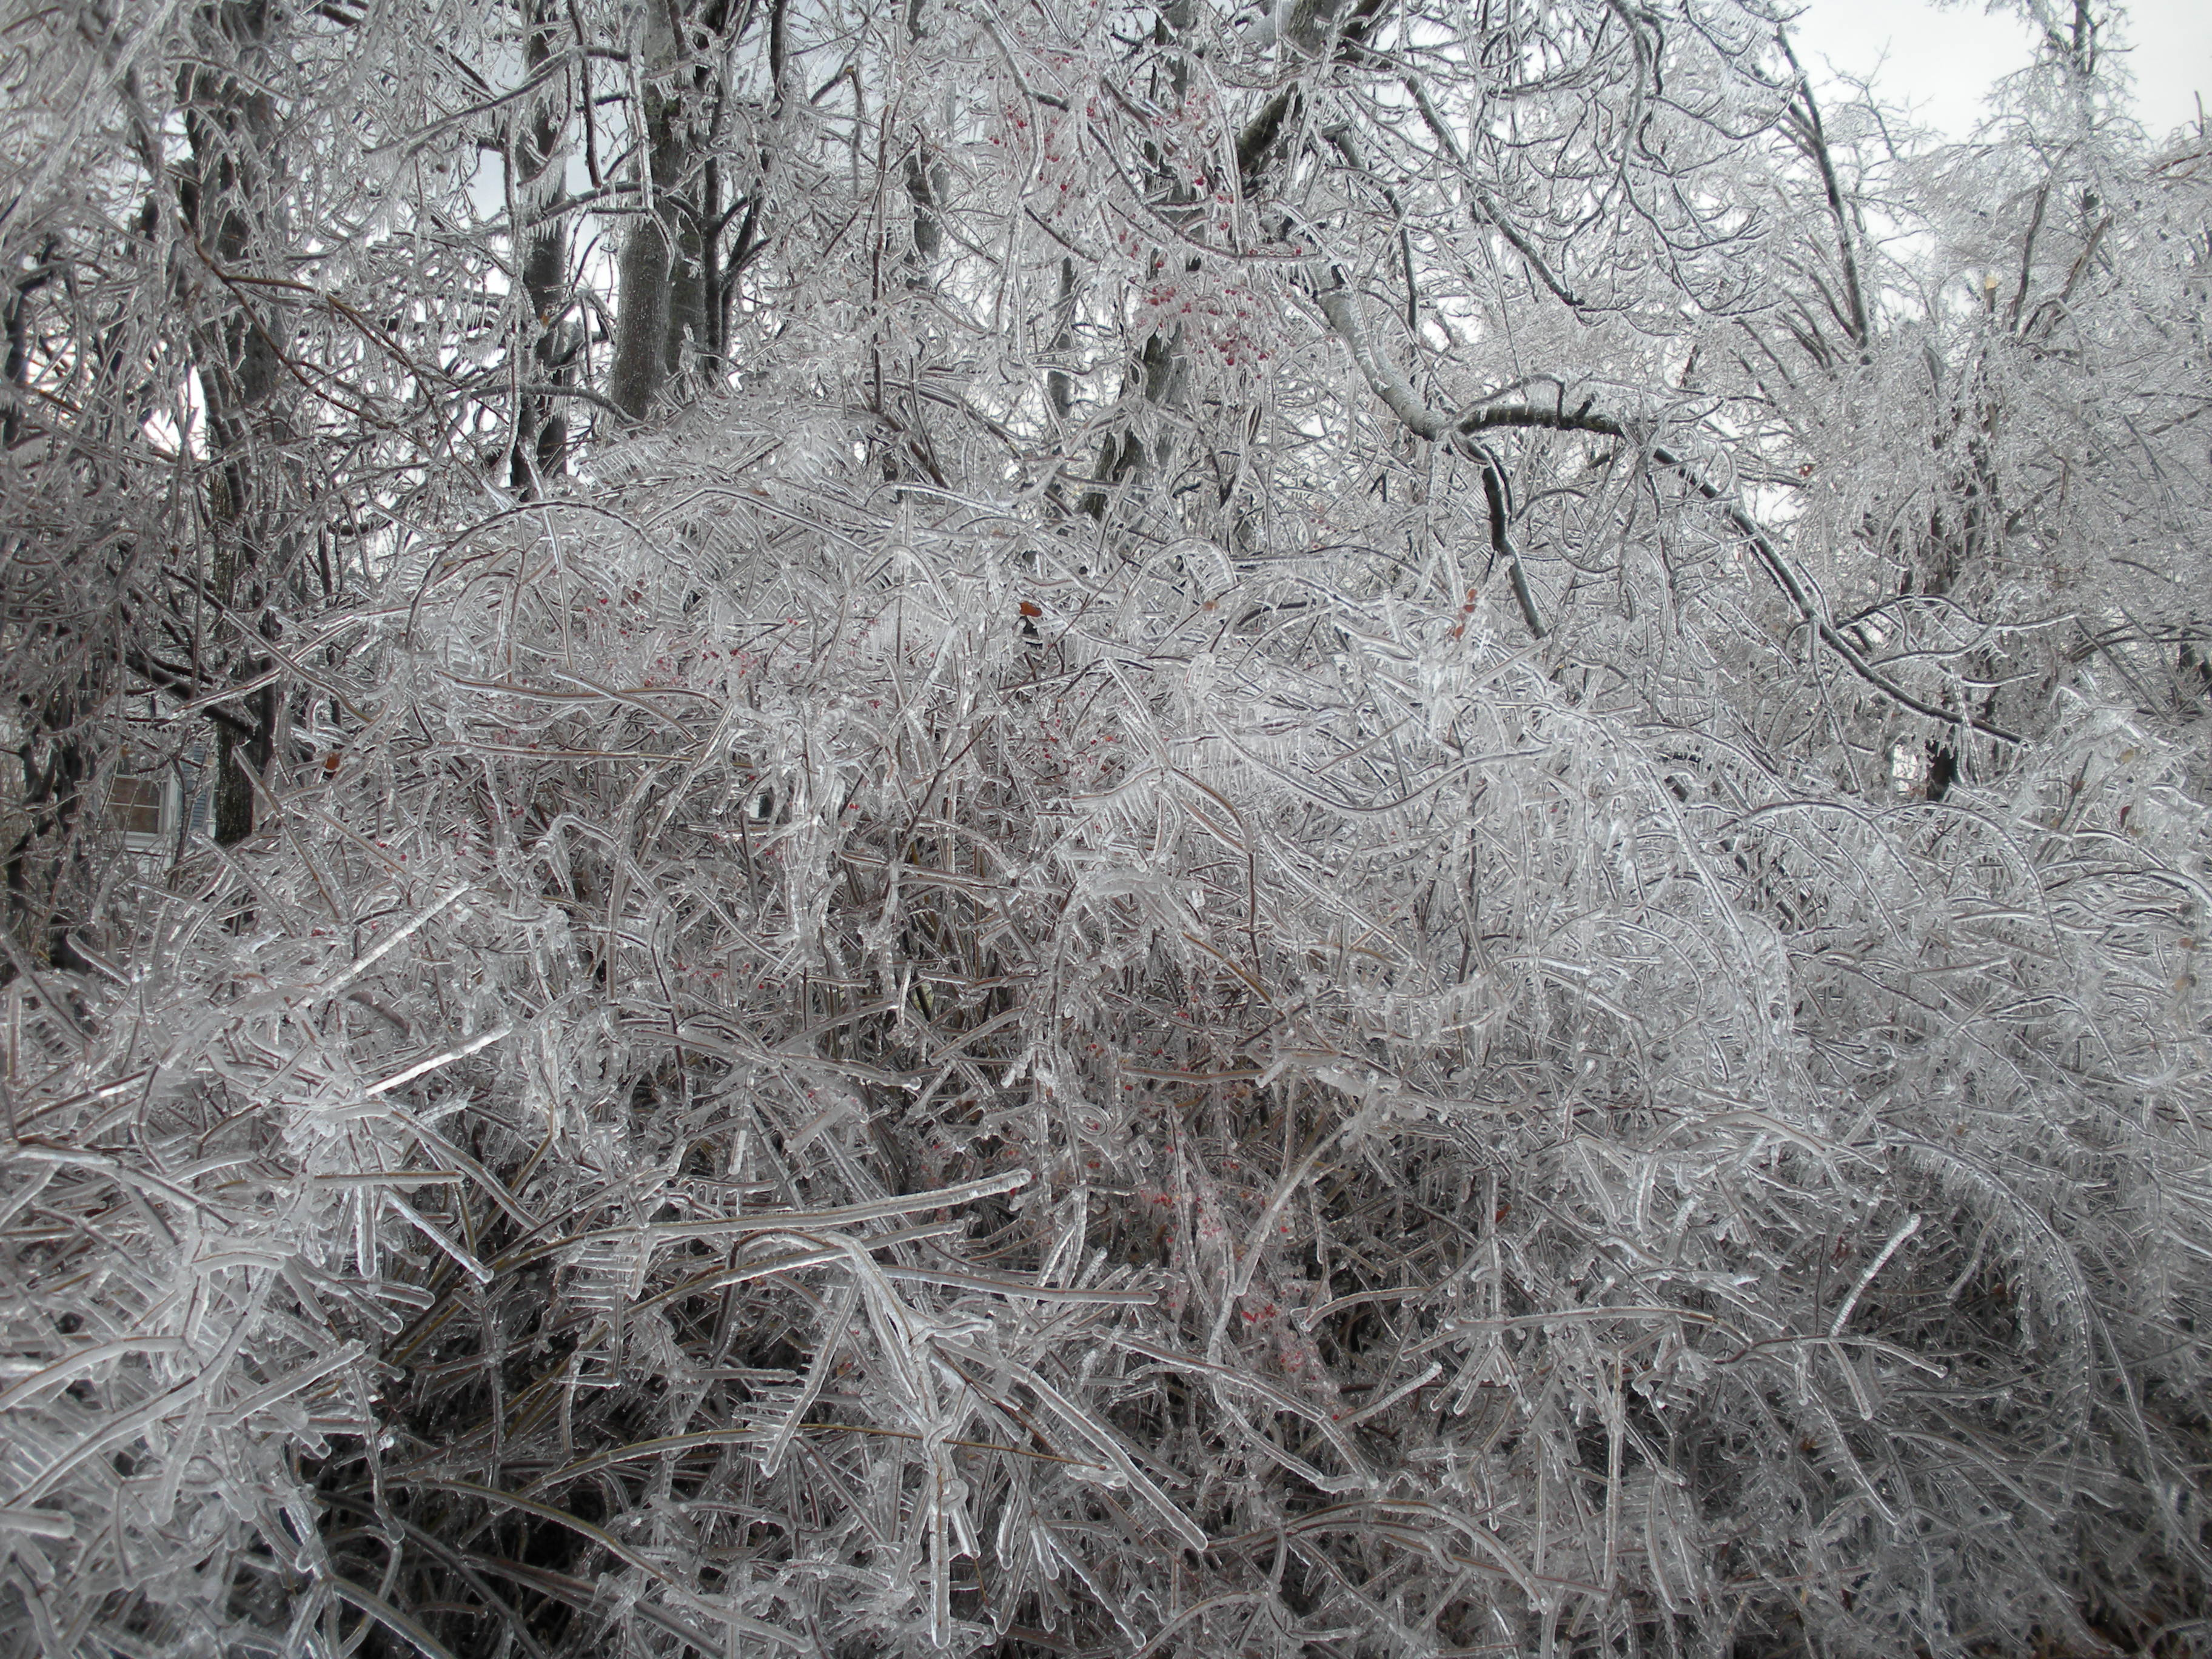 Crystalized tree during a serious icestorm.....